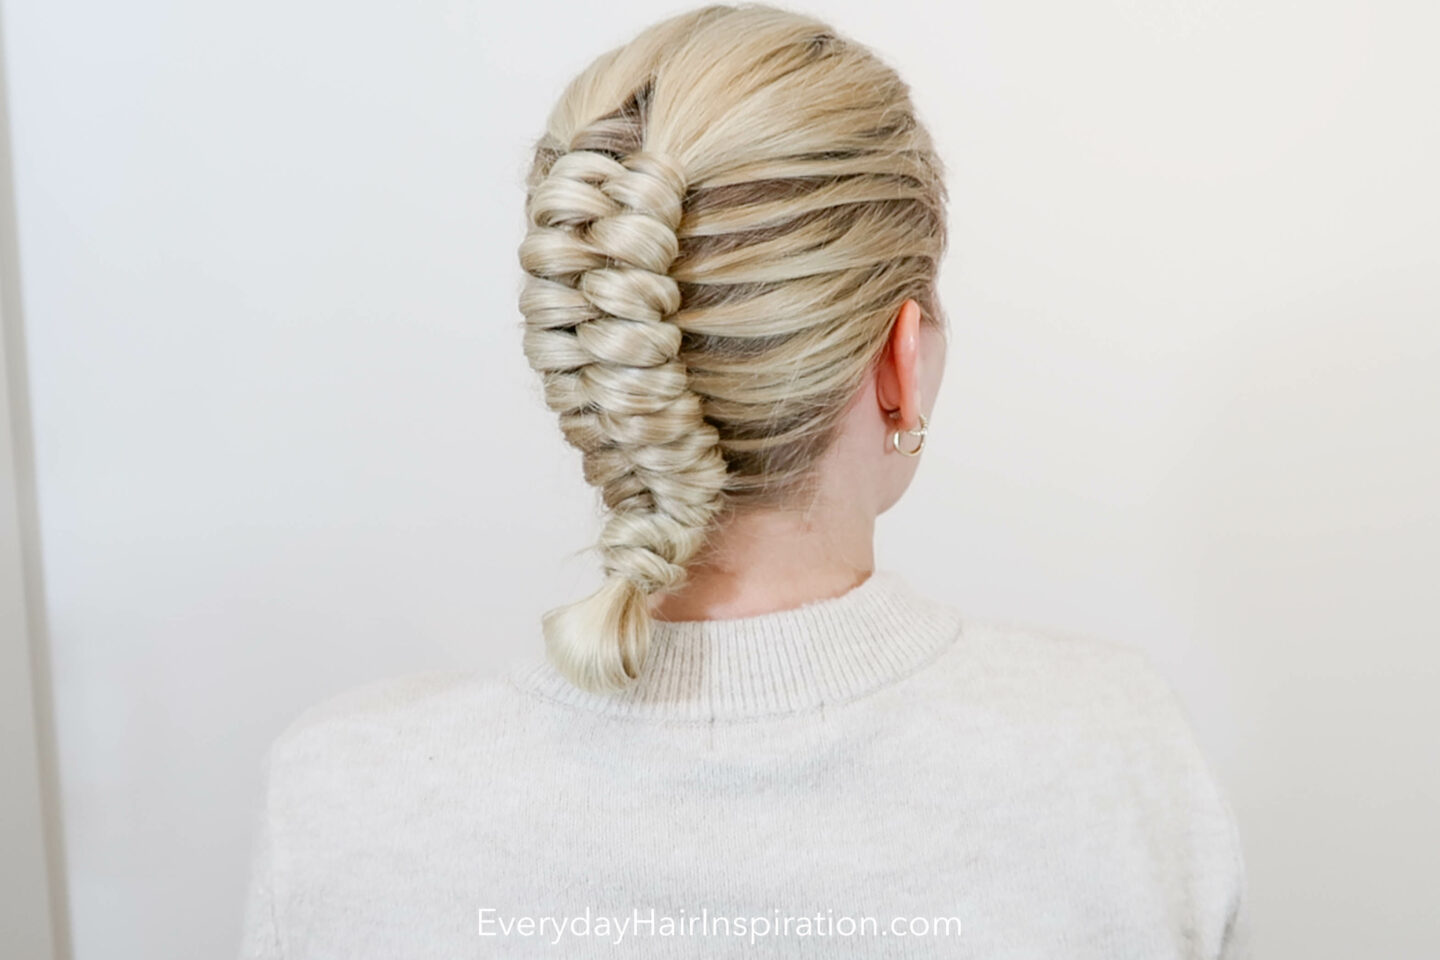 Blonde girl with a dutch infinity braid in her hair, with a small bun at the end.